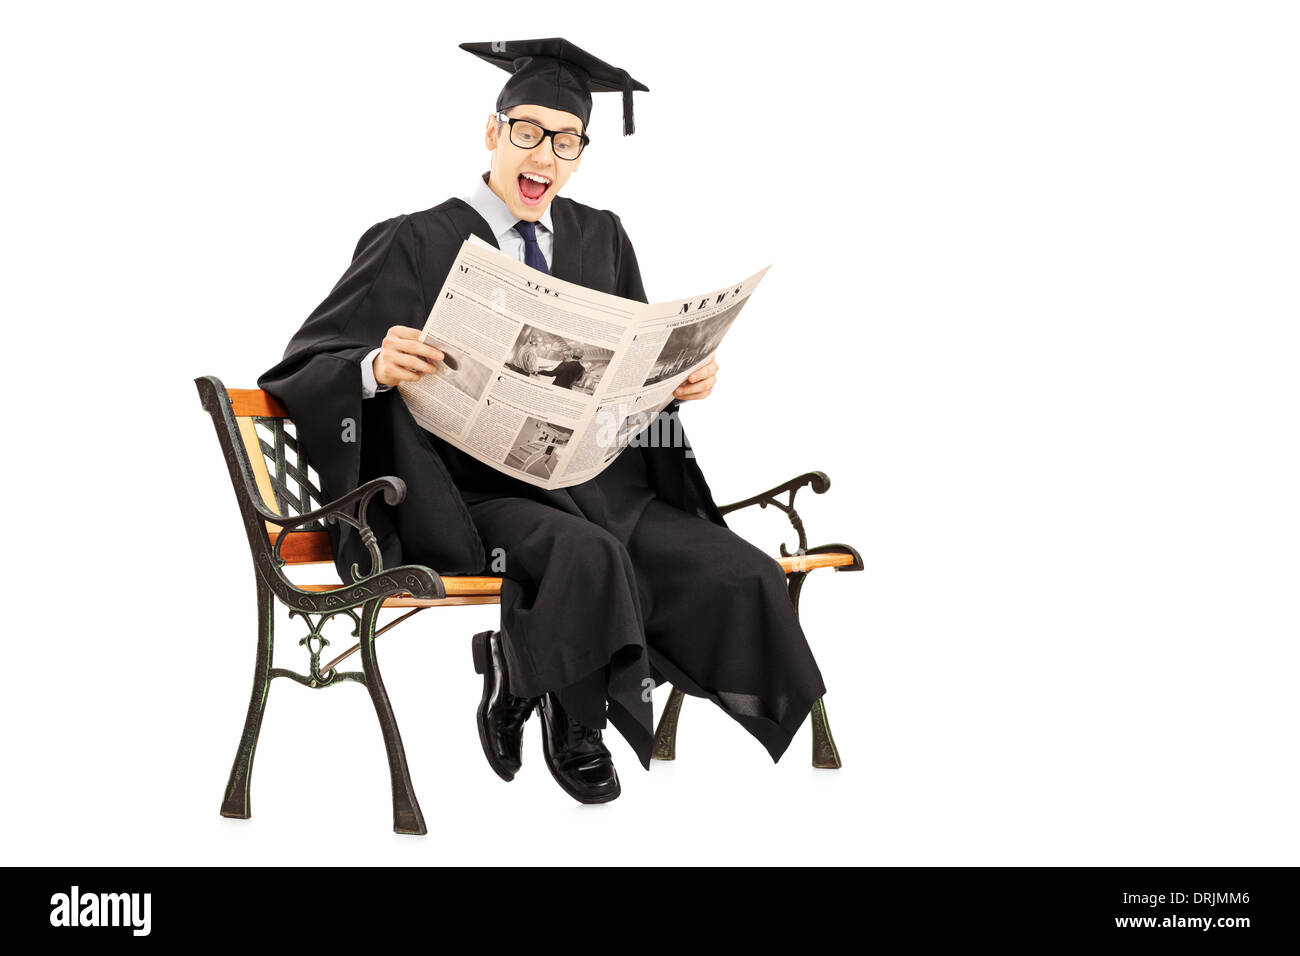 Excited guy in graduation gown reading a newspaper seated on bench - Stock Image